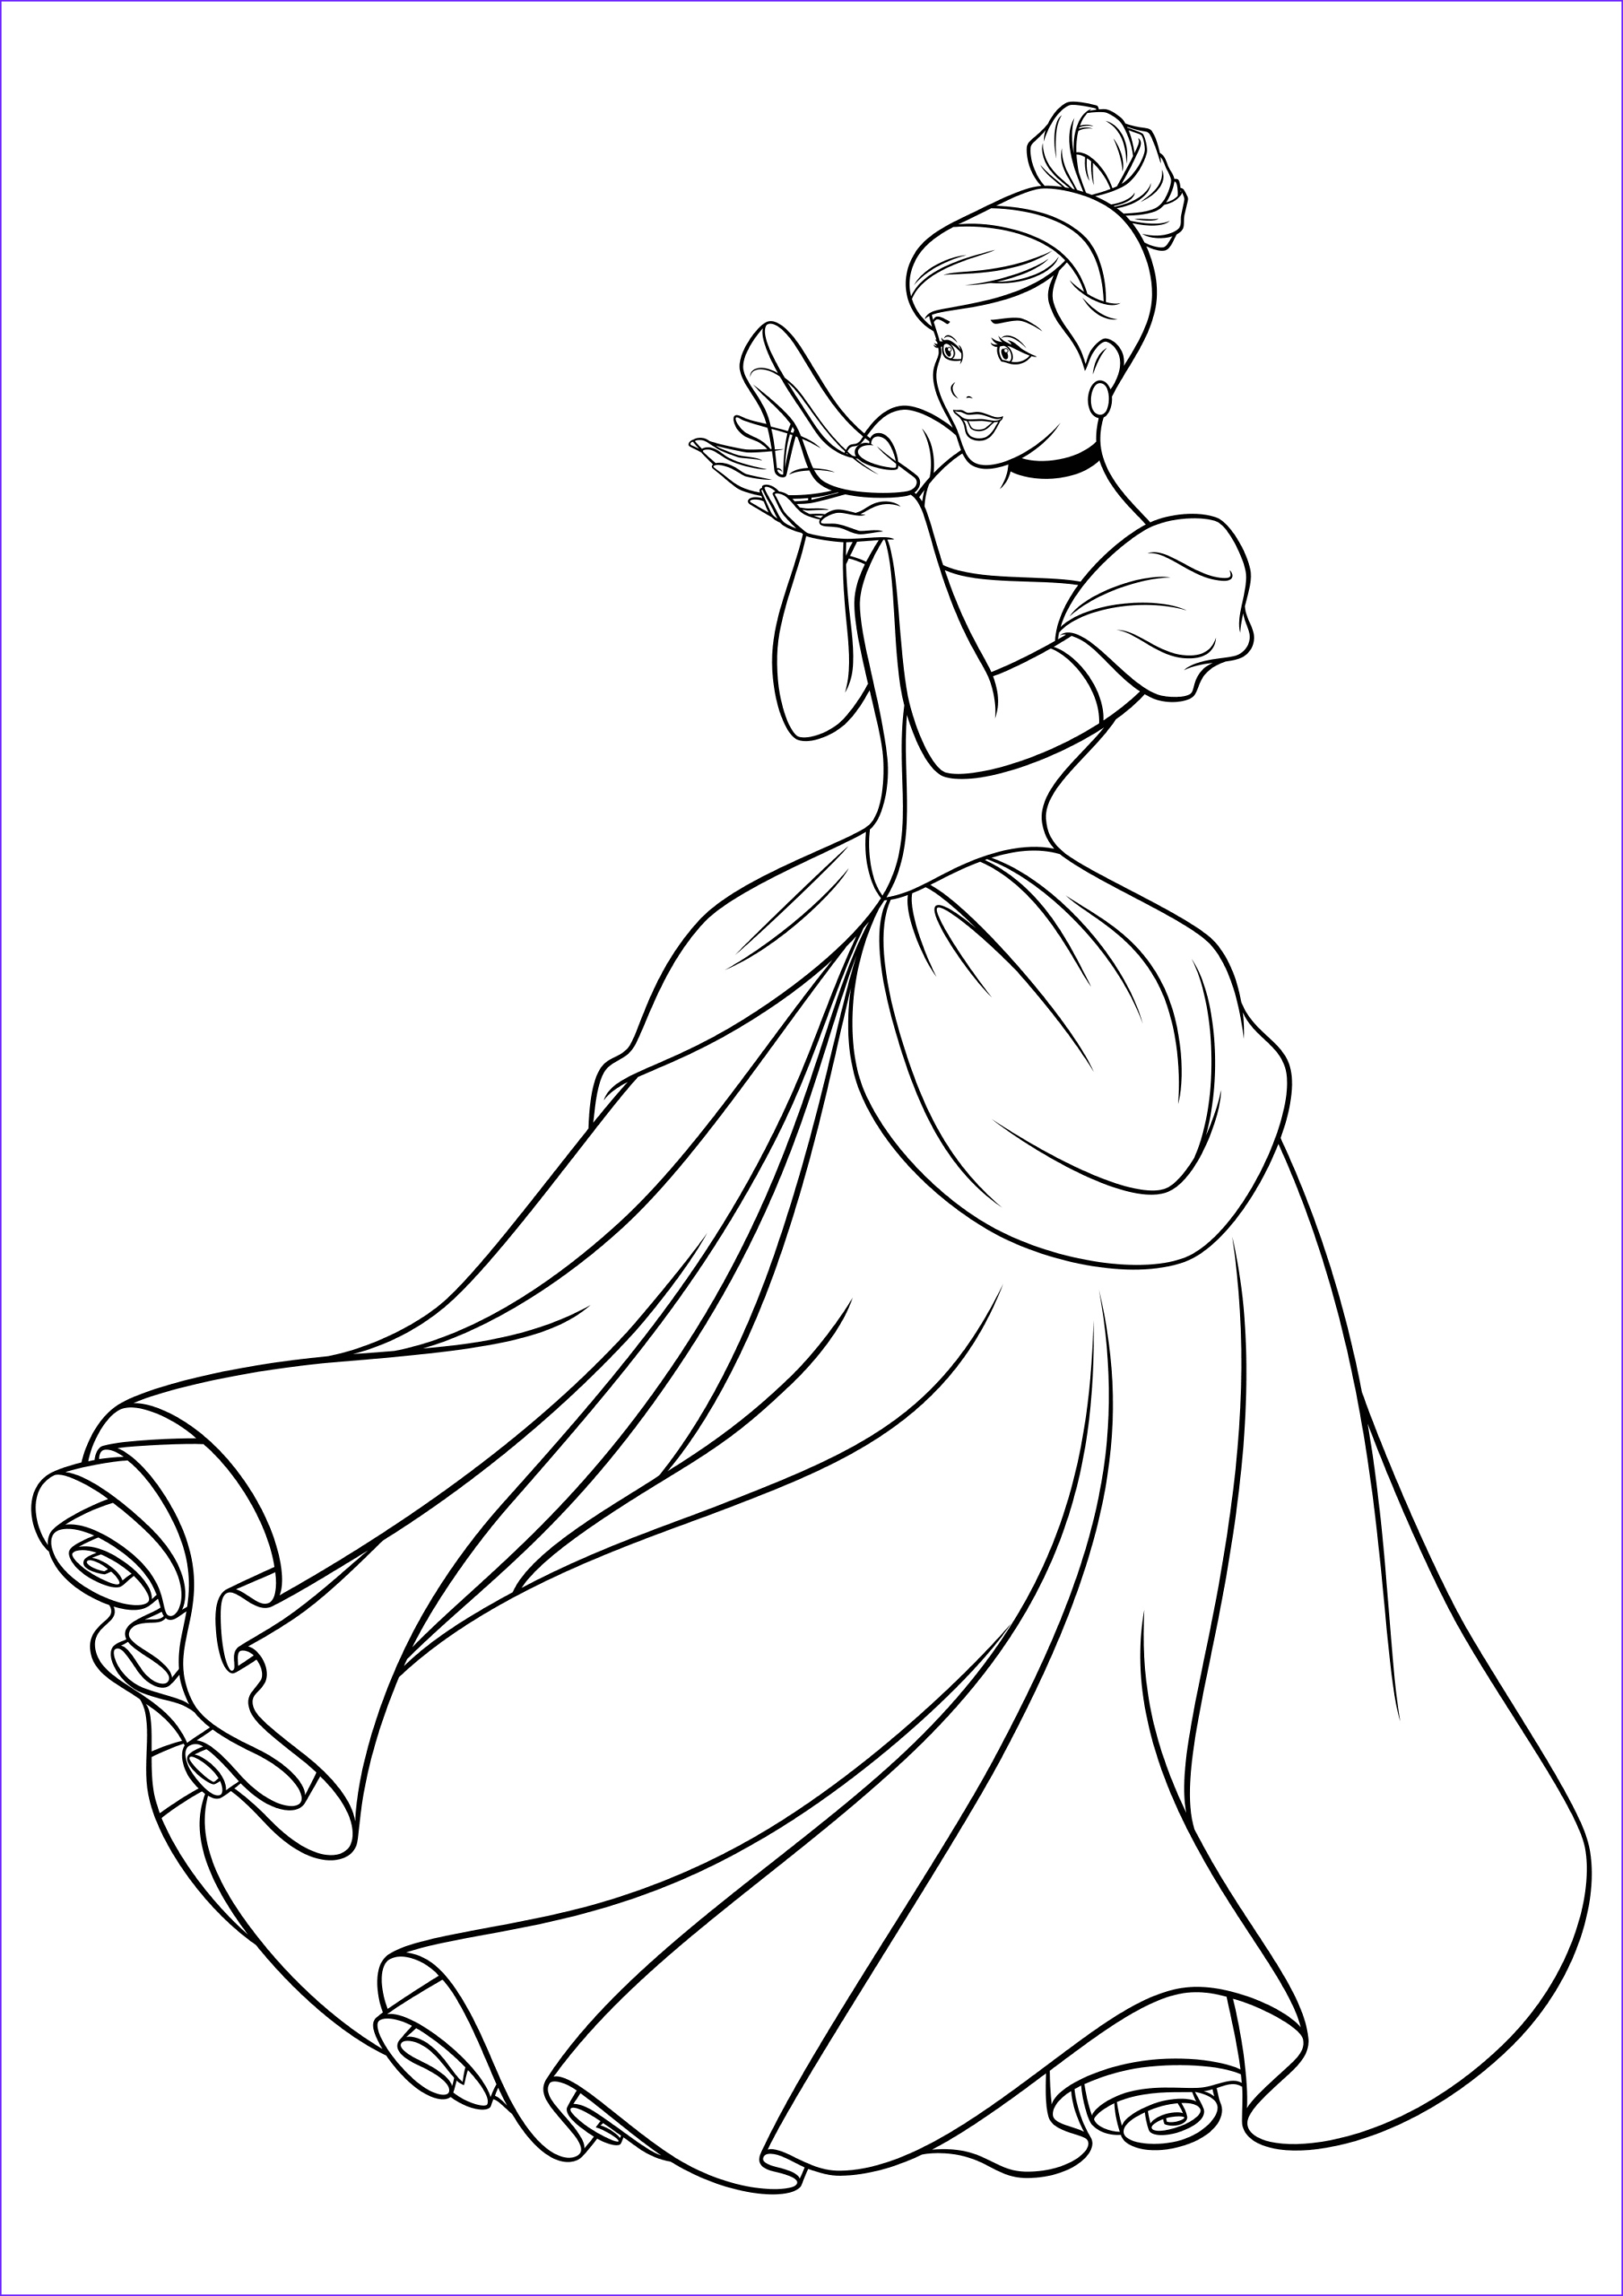 Cinderella Coloring Pages Cool Collection Cinderella Coloring Pages to and Print for Free